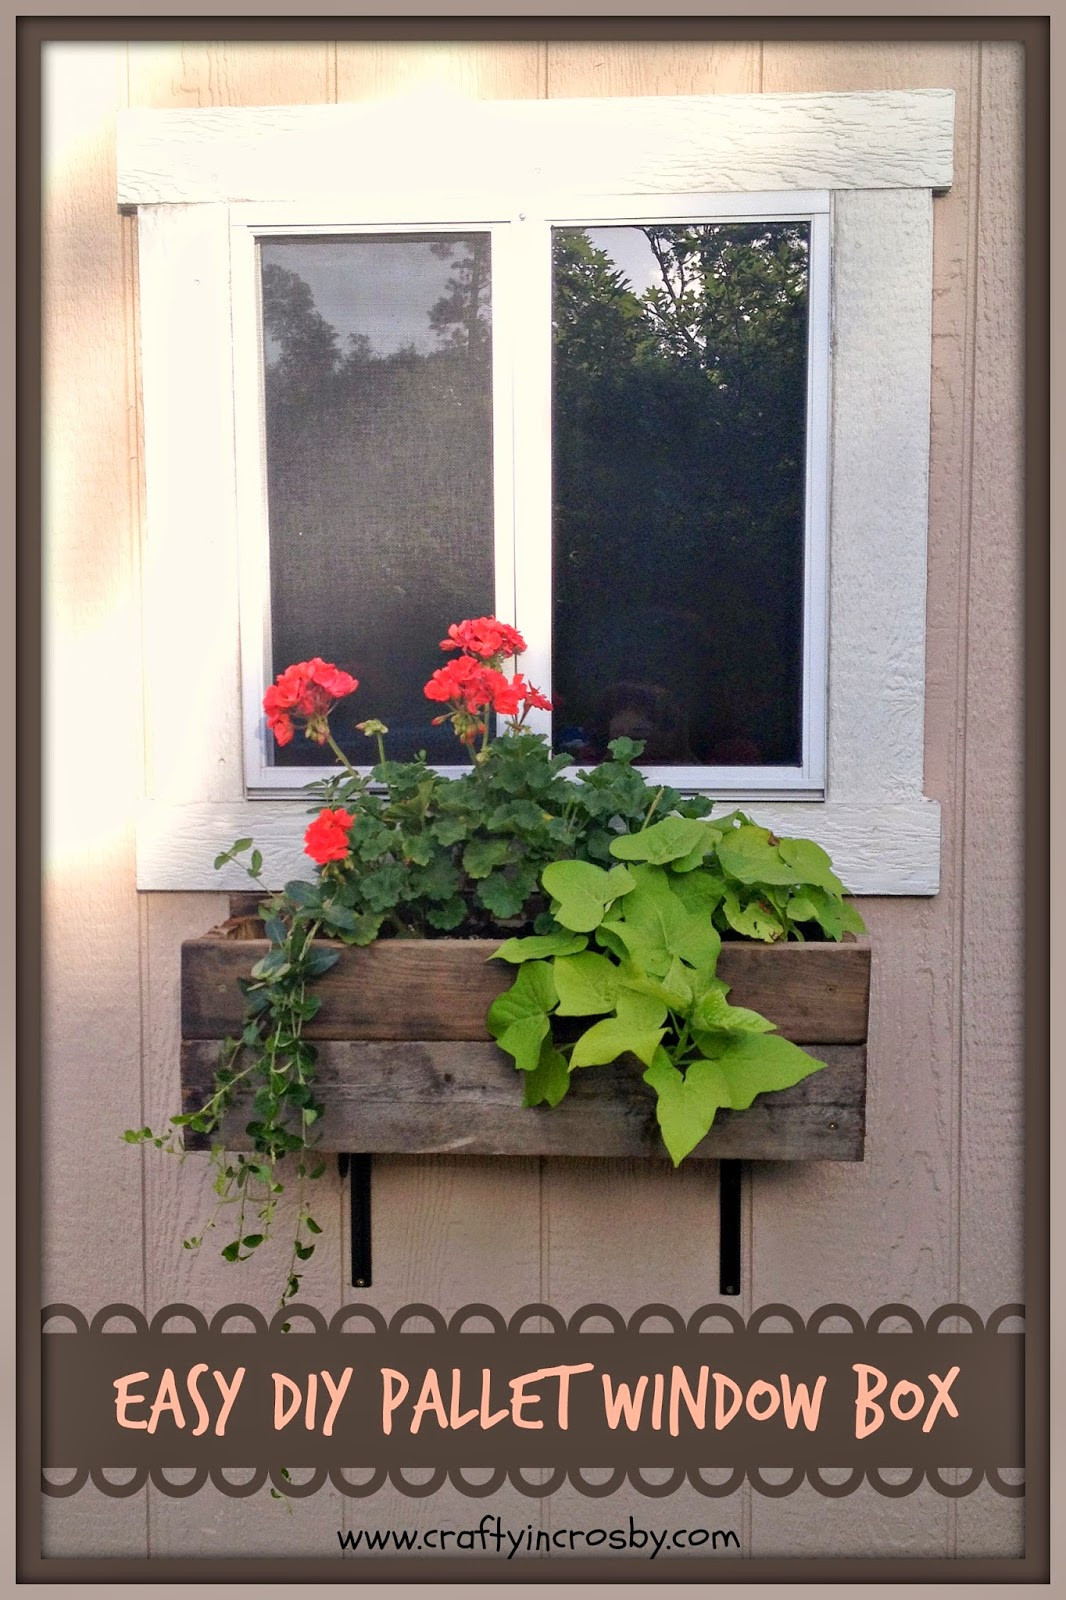 Best ideas about DIY Window Planter Box . Save or Pin Crafty in Crosby Easy DIY Pallet Window Box Now.